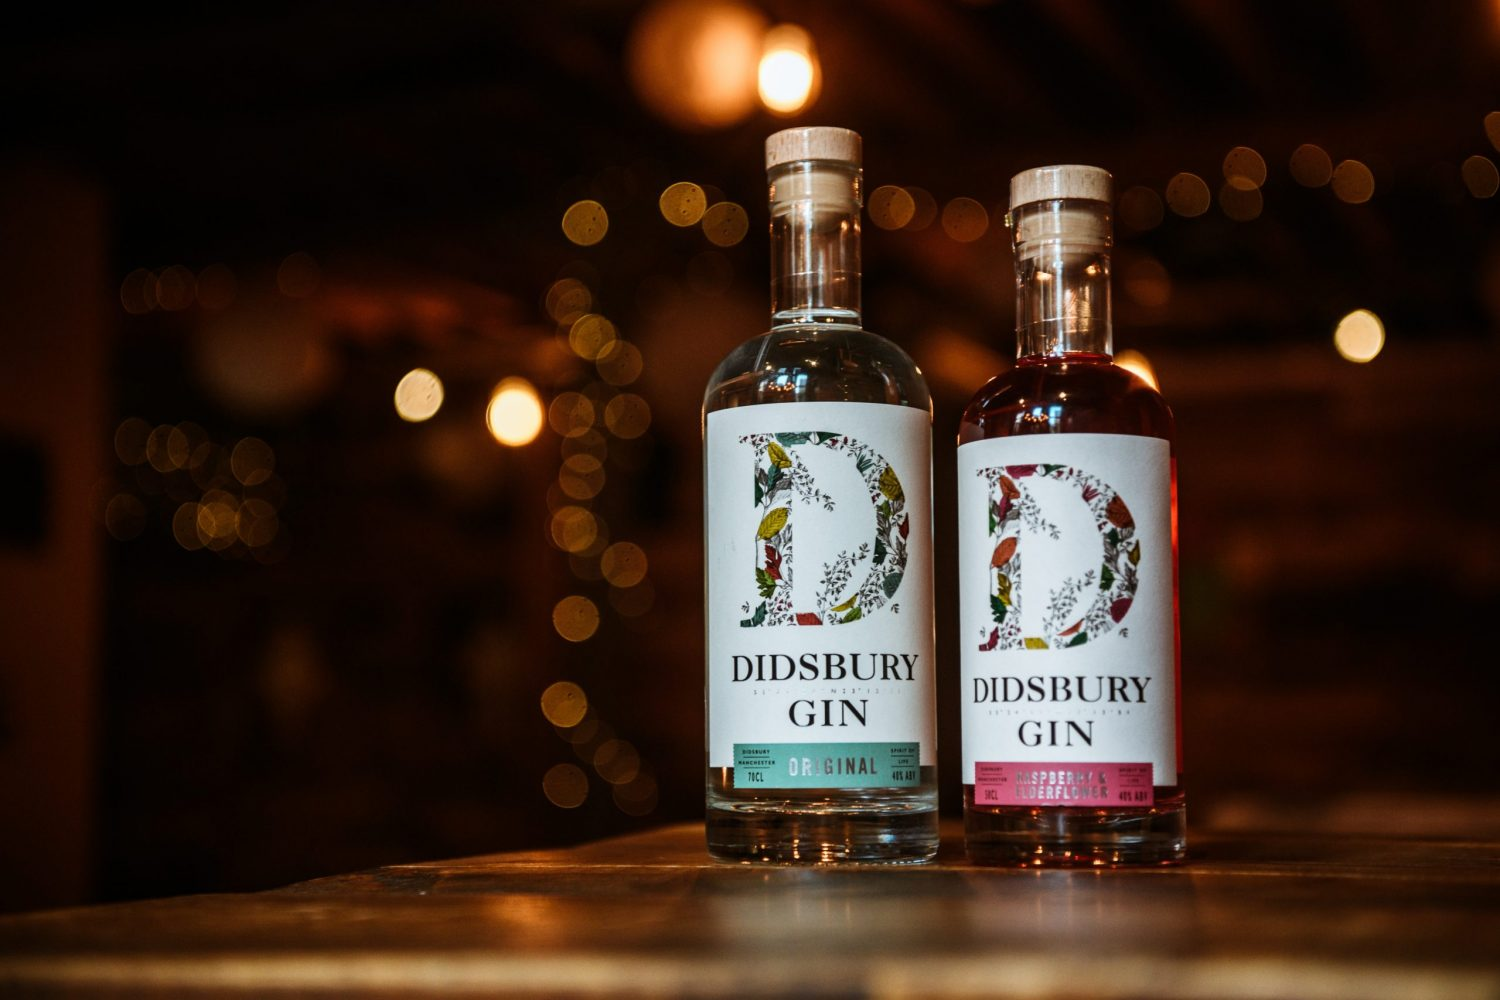 2 bottles of Didsbury Gin rested on a table